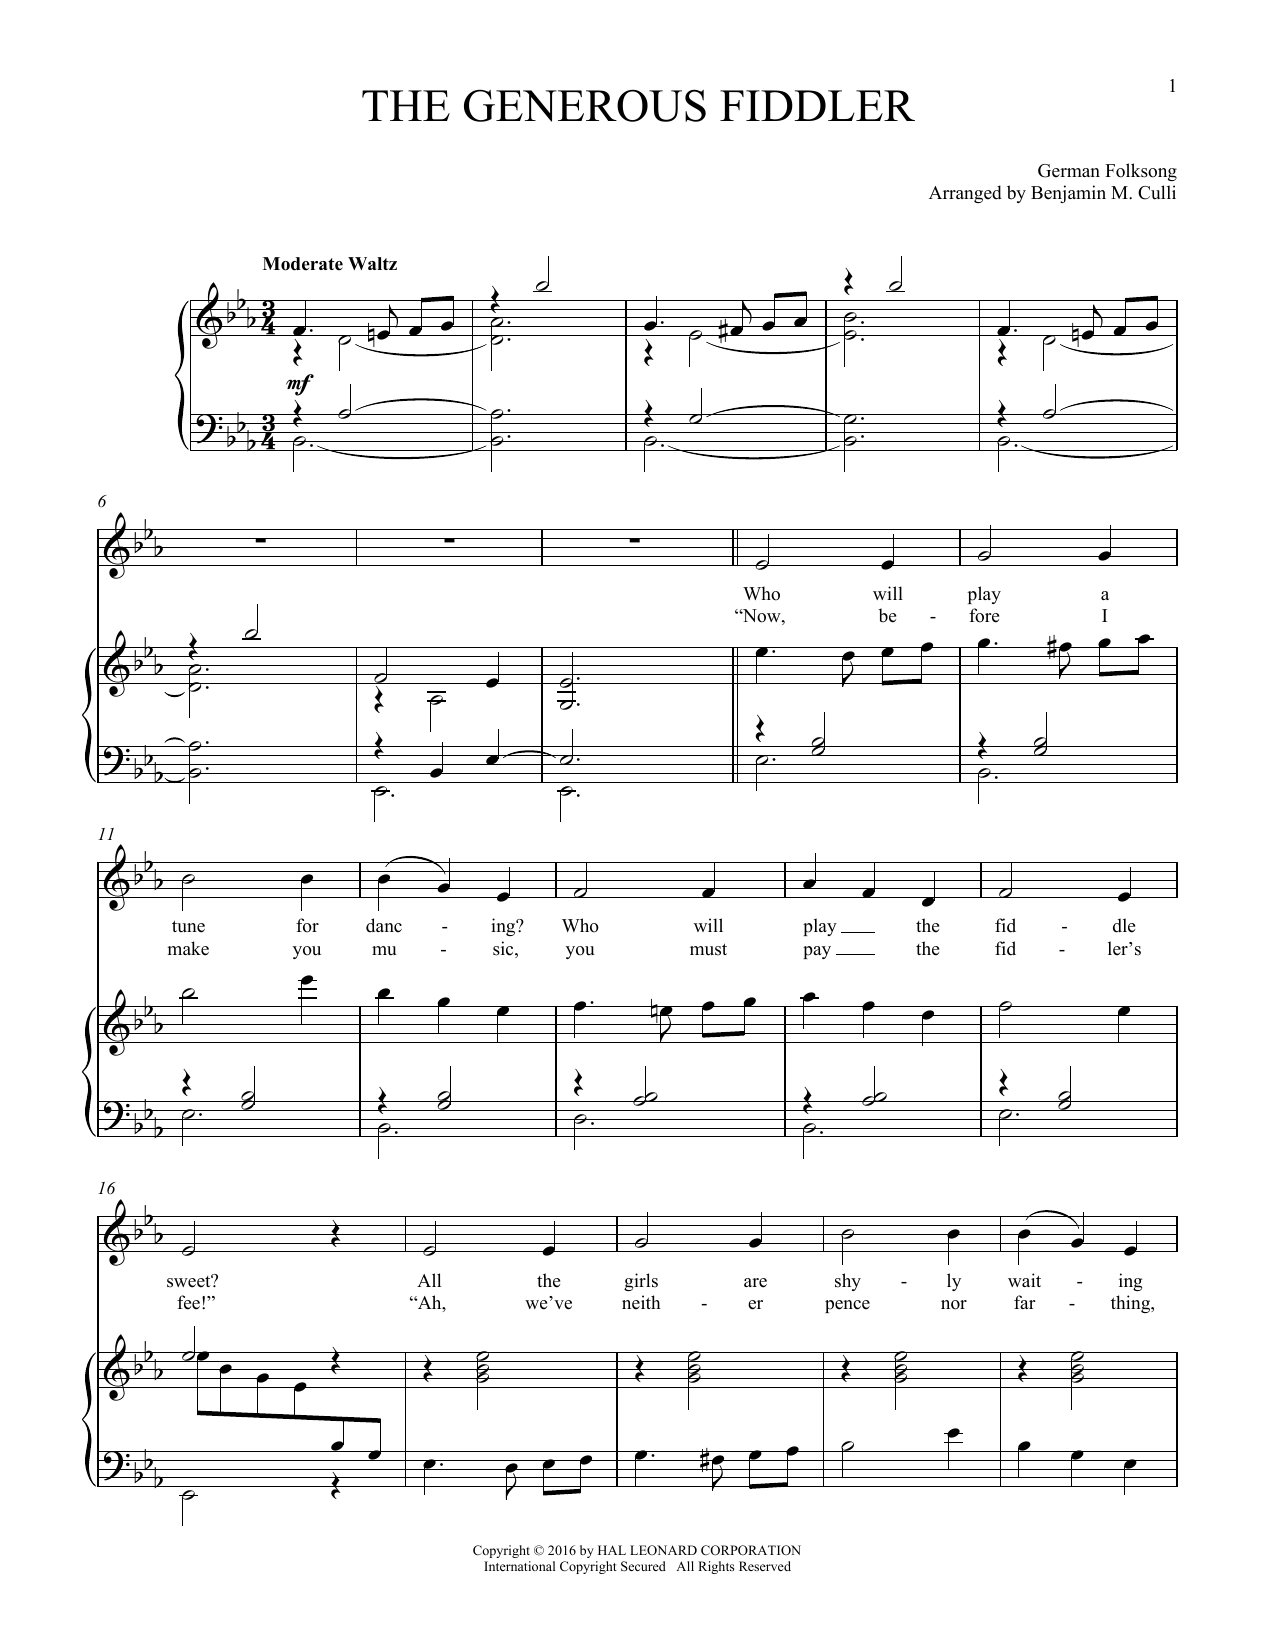 The Generous Fiddler (Piano & Vocal)